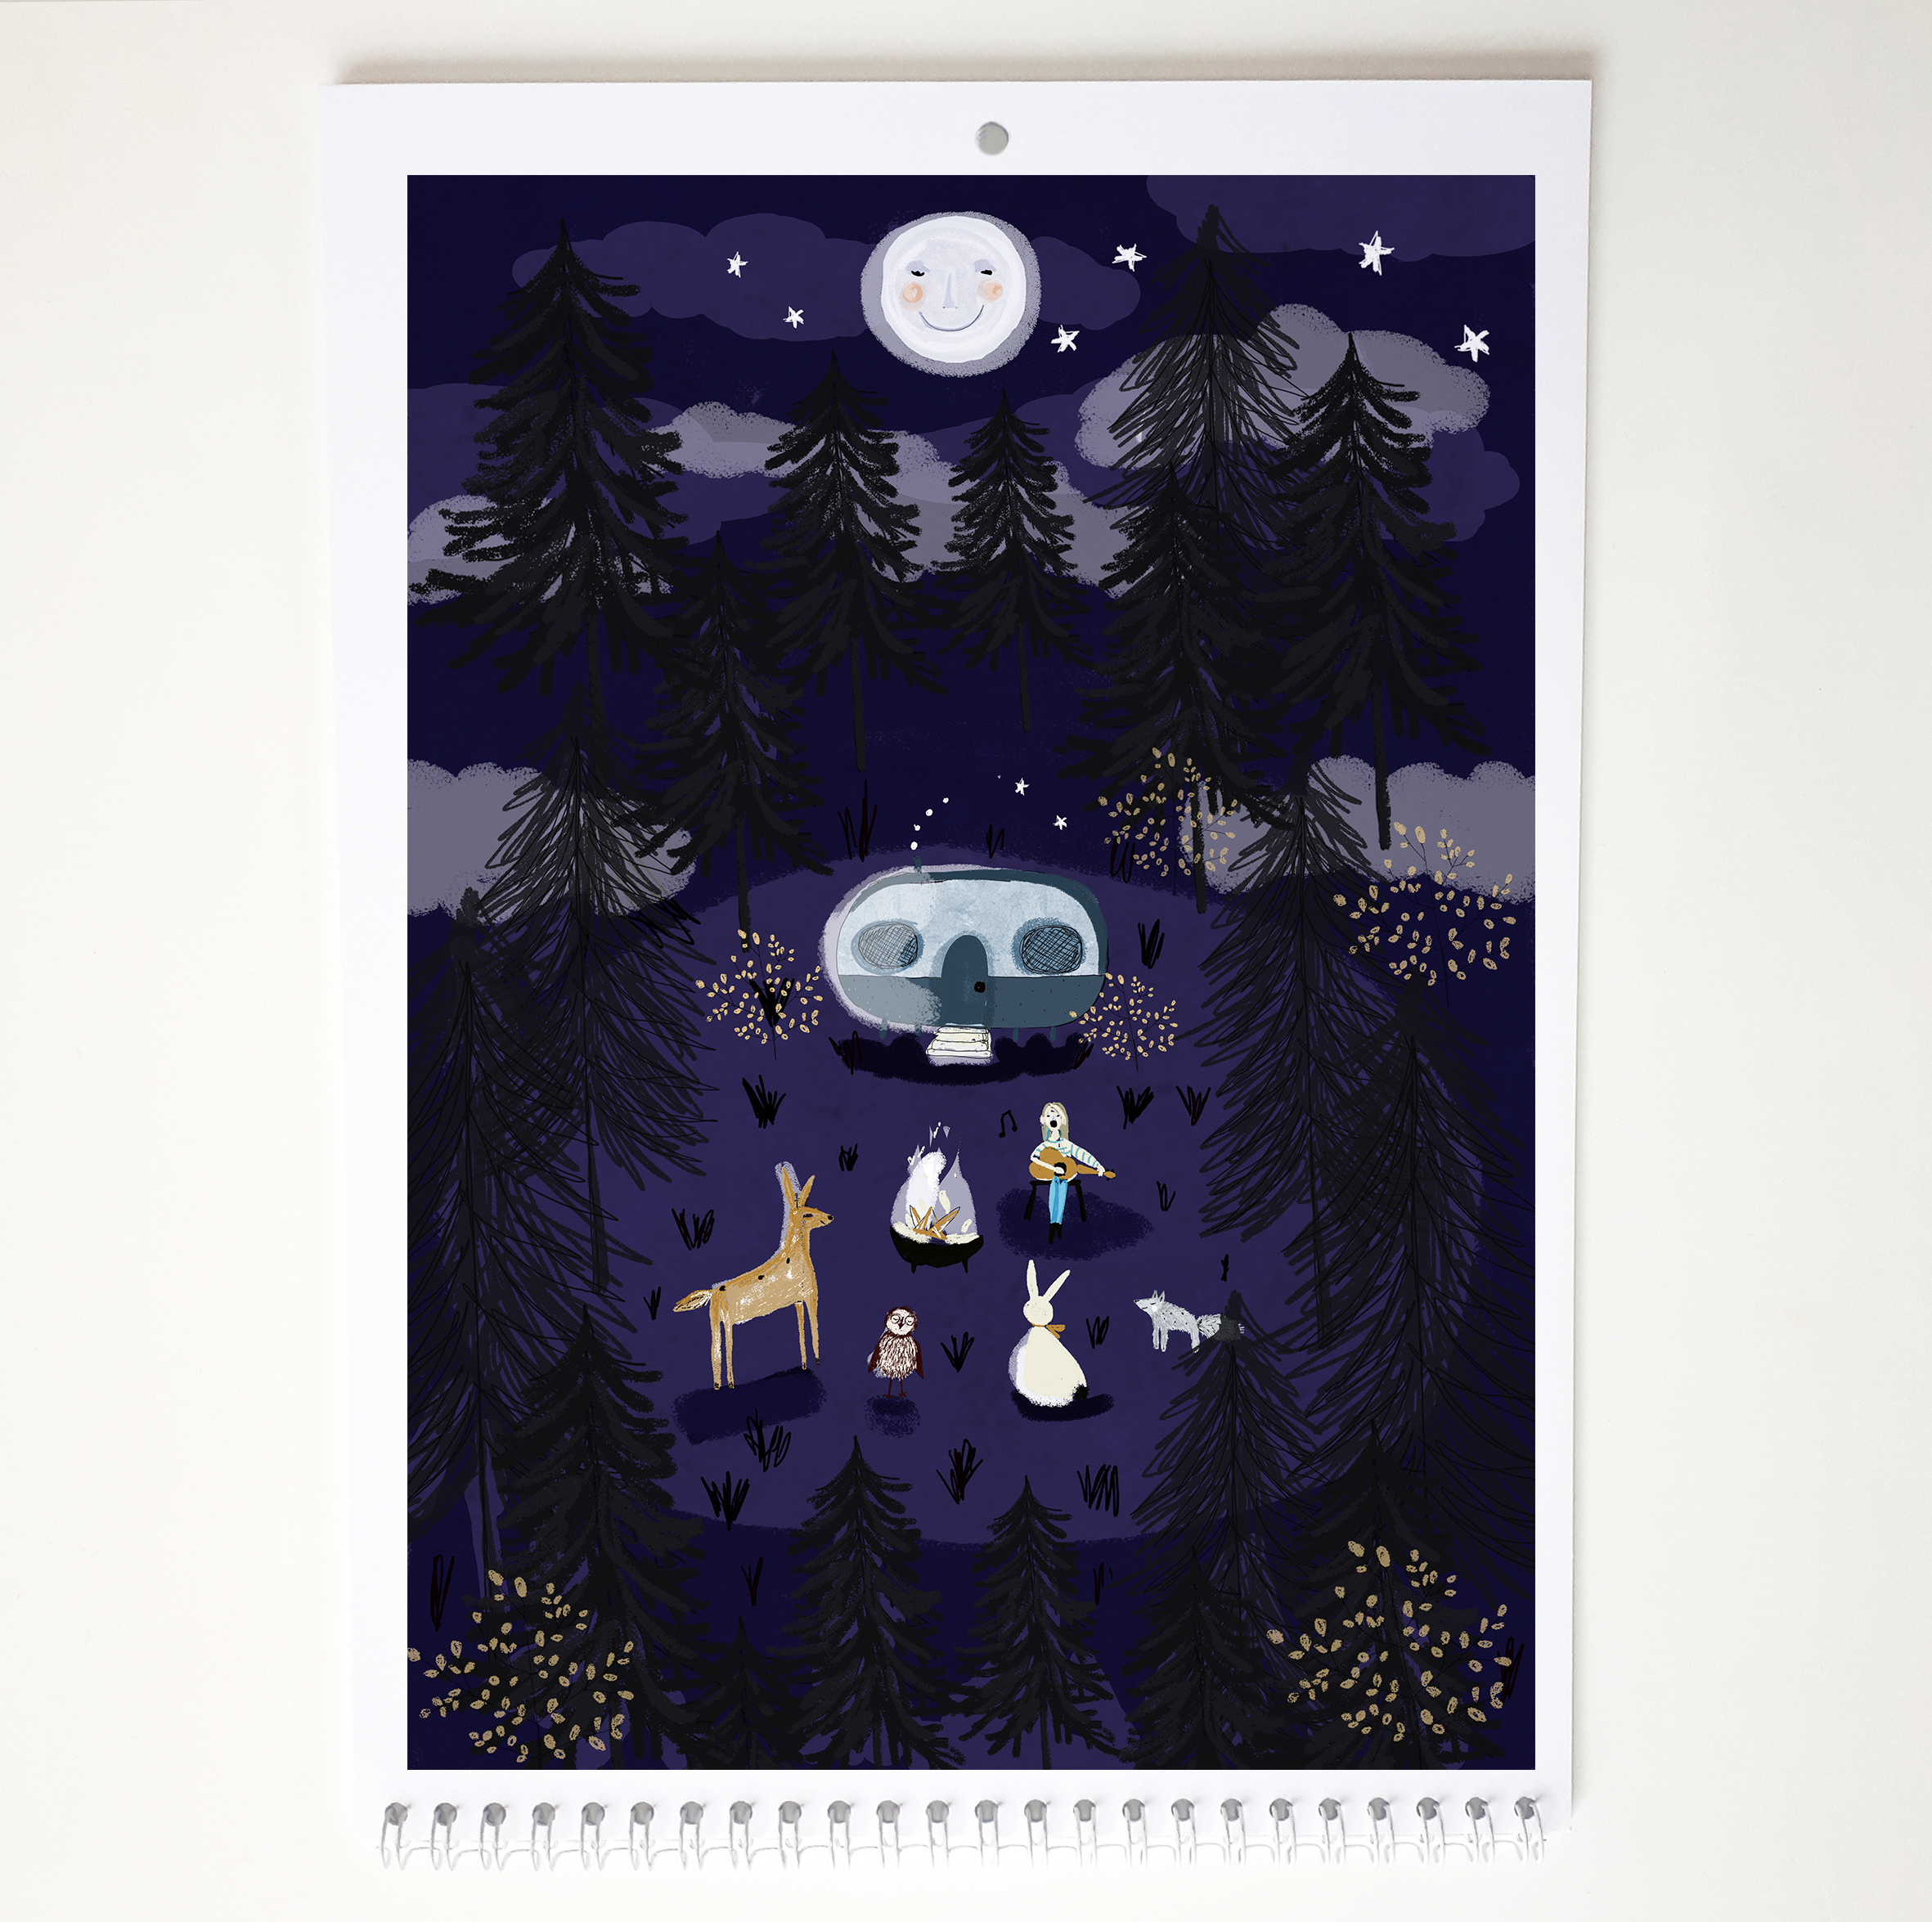 Susse Collection 2019 Calendar-16 .jpg